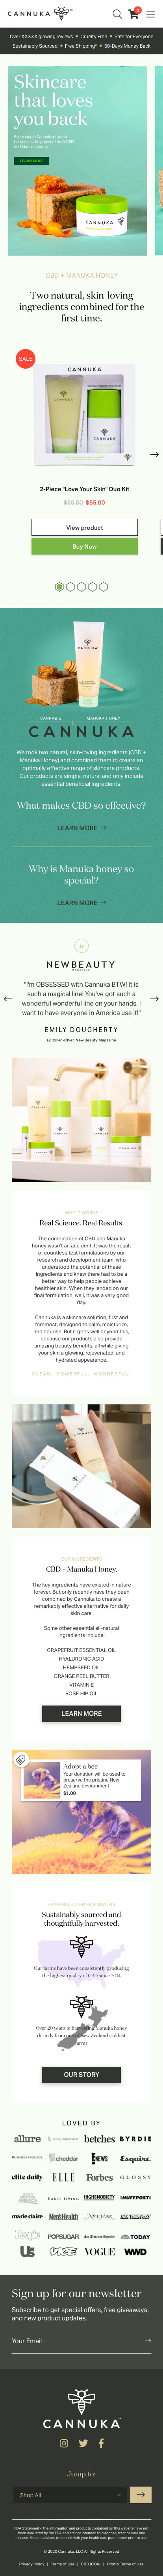 Cannuka - Homepage (Mobile)